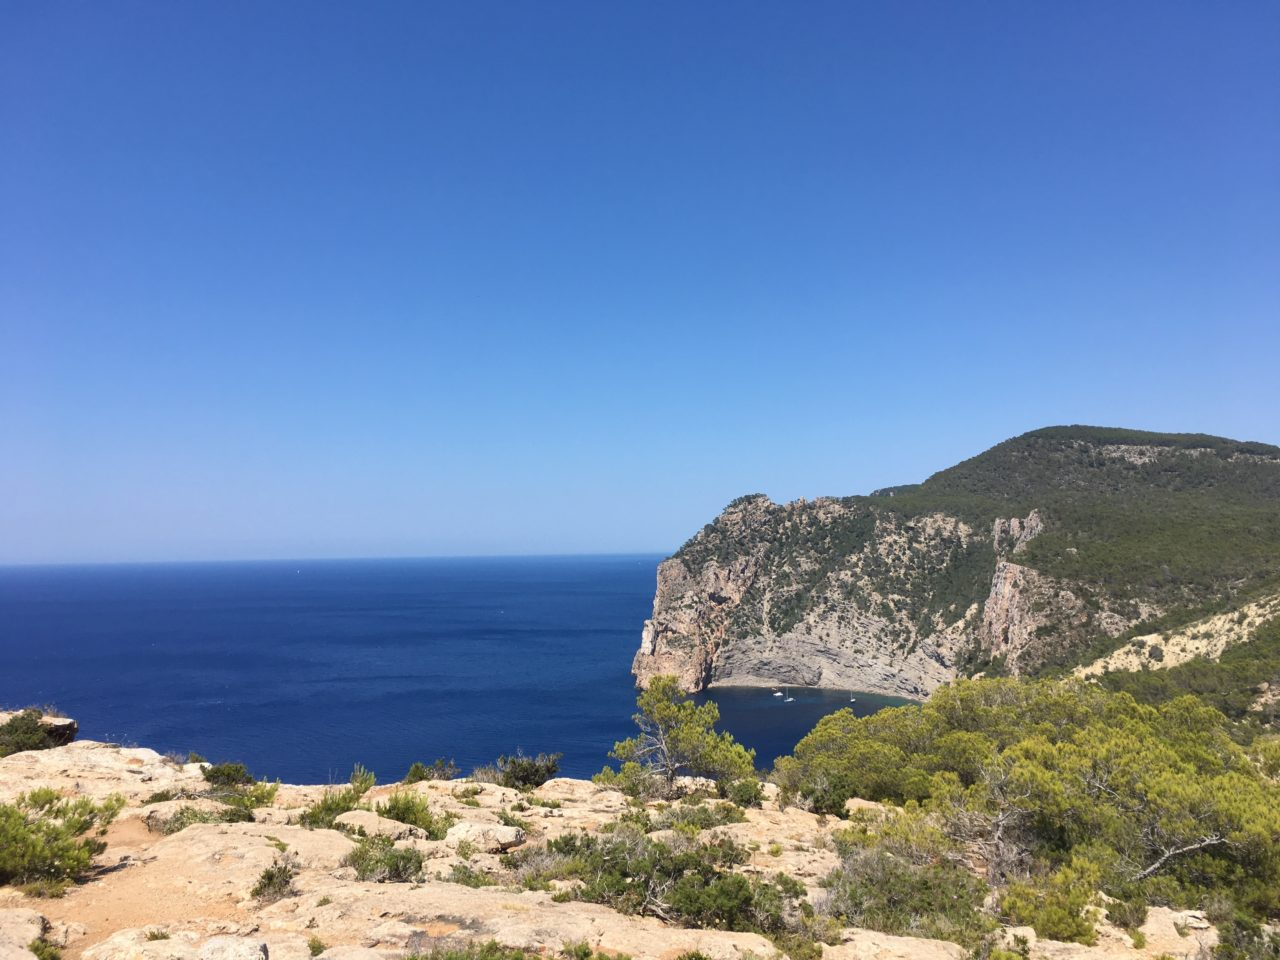 Mountain View Of Island Coast And Ocean With Clear Blue Sky